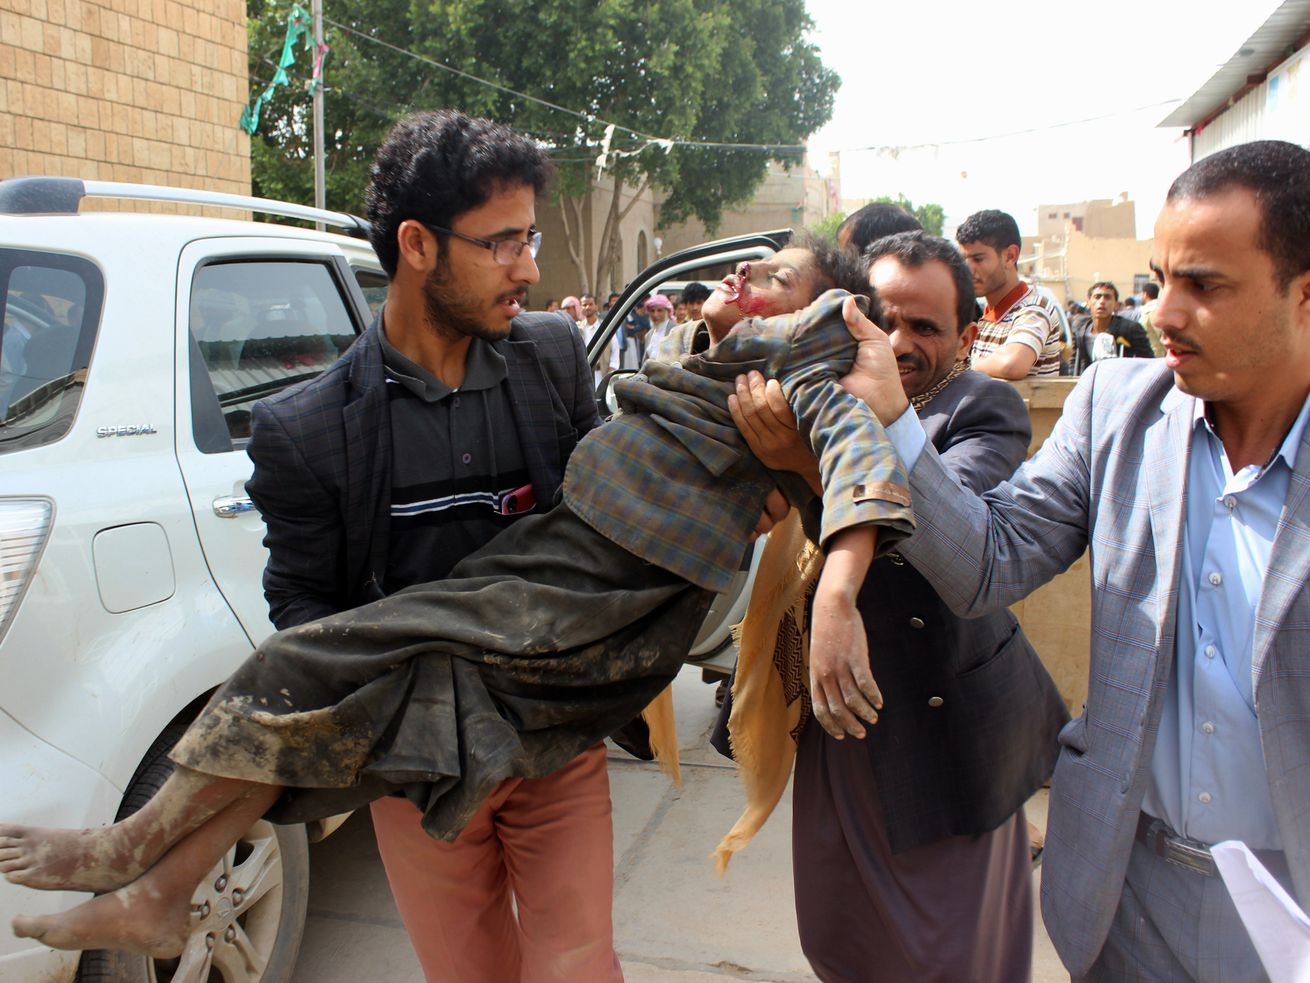 A Yemeni child is transported to a hospital after being wounded in a reported airstrike on the Iran-backed Houthi rebels' stronghold province of Sa'ada on August 9, 2018.